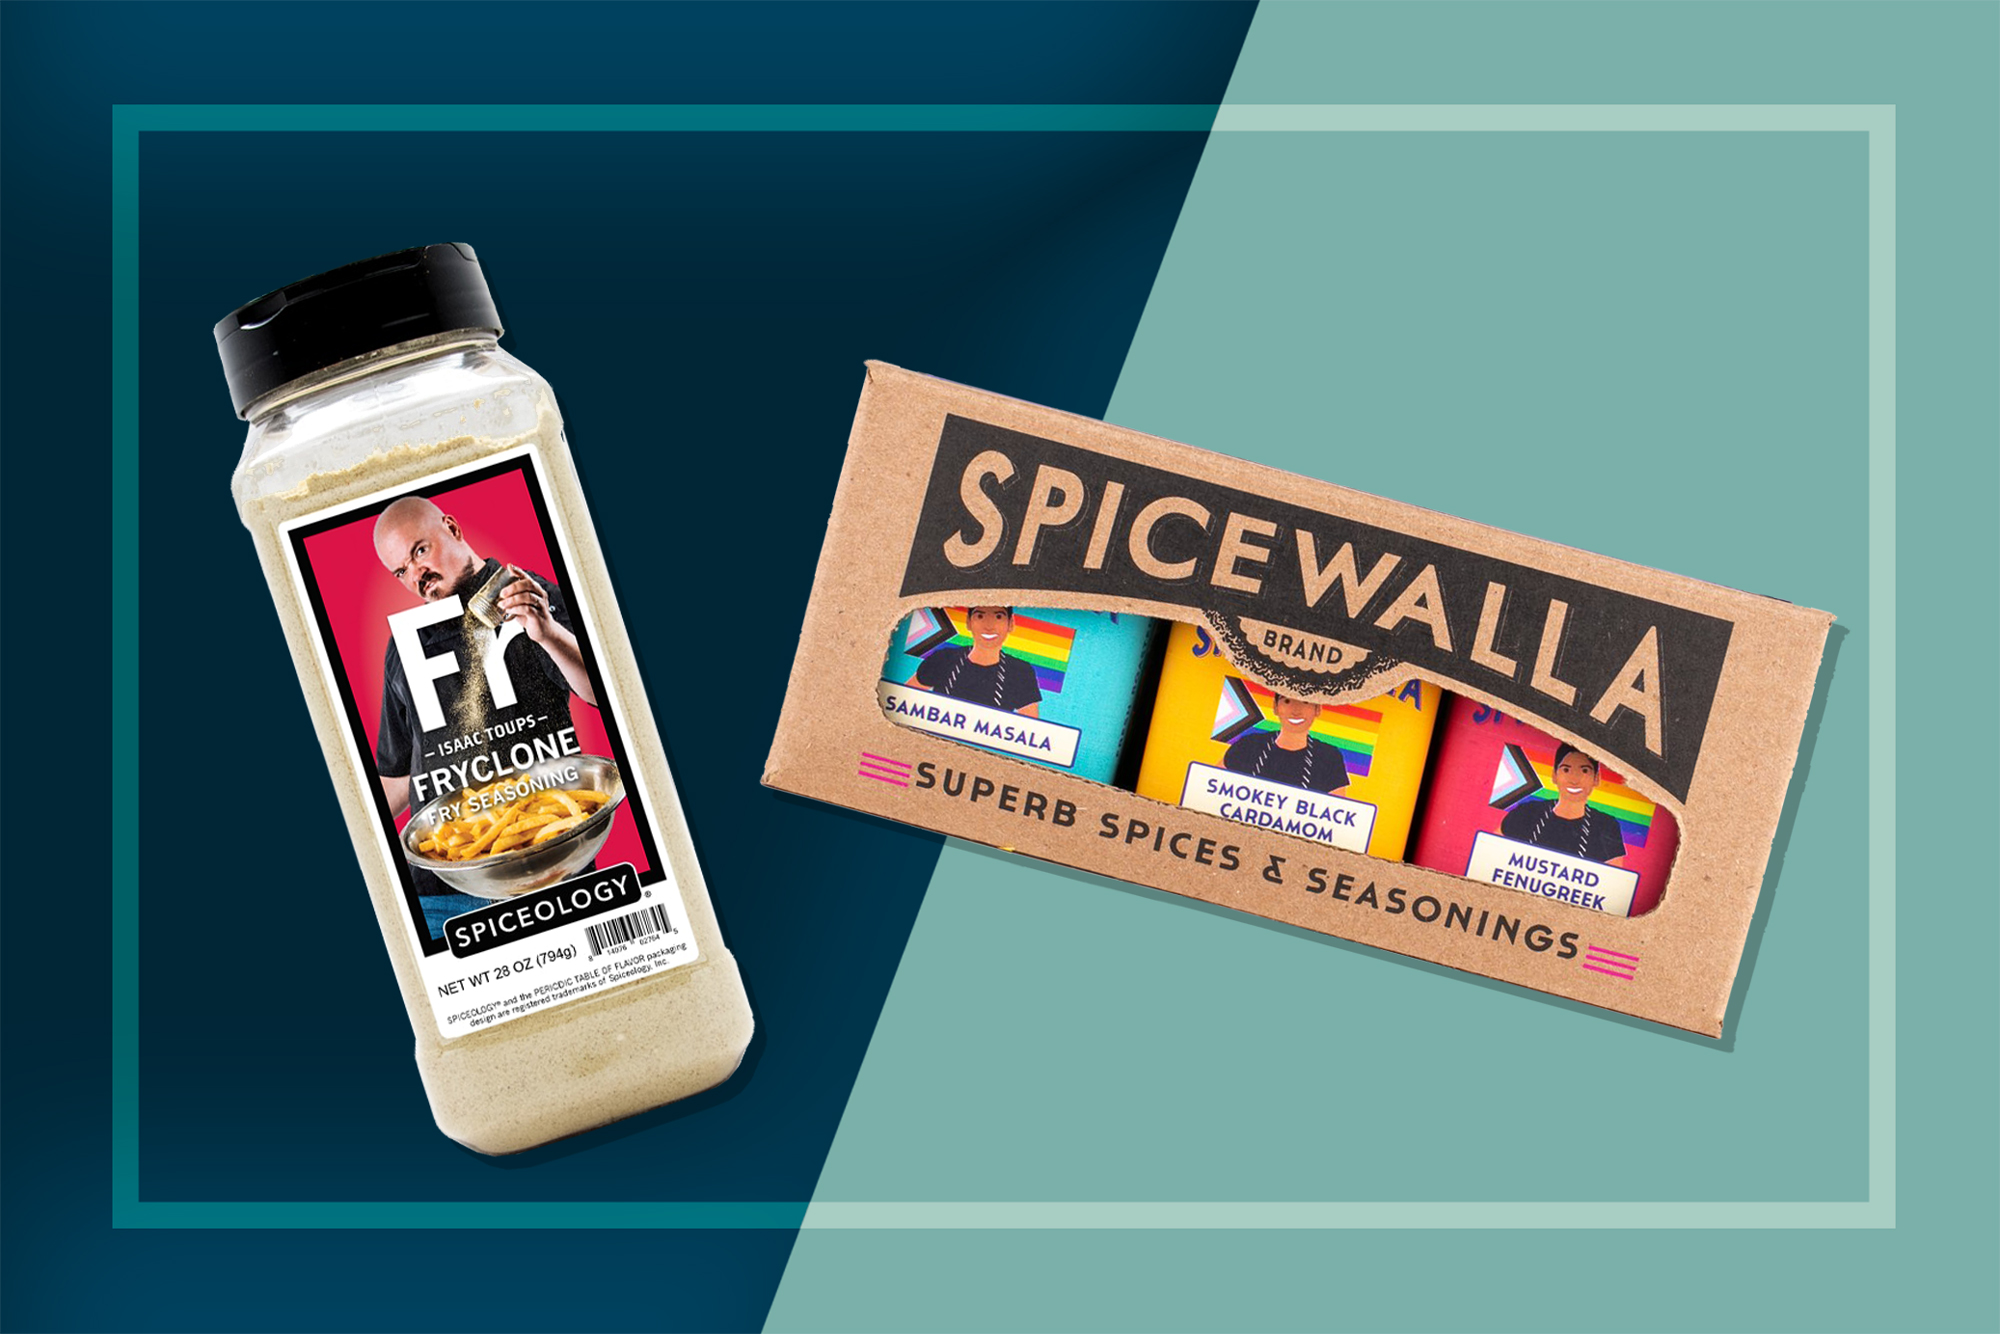 Spiceology's Fryclone and Spicewalla's Preeti Mistry 3-Pack Spices